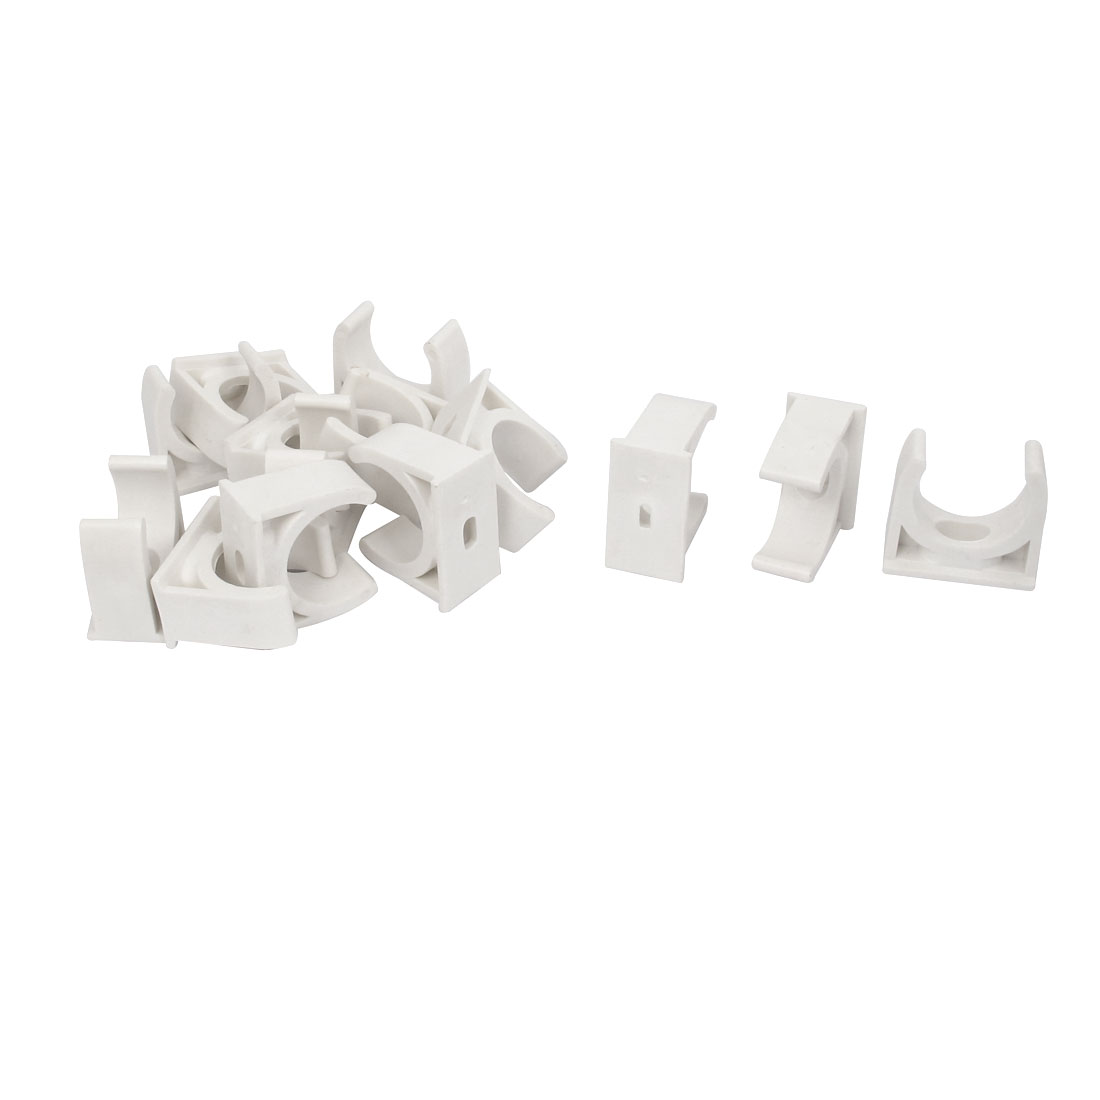 14pcs 25mm Diameter White PVC Water Tube Pipe Hose Fitting Clamps Snap in Type Clips